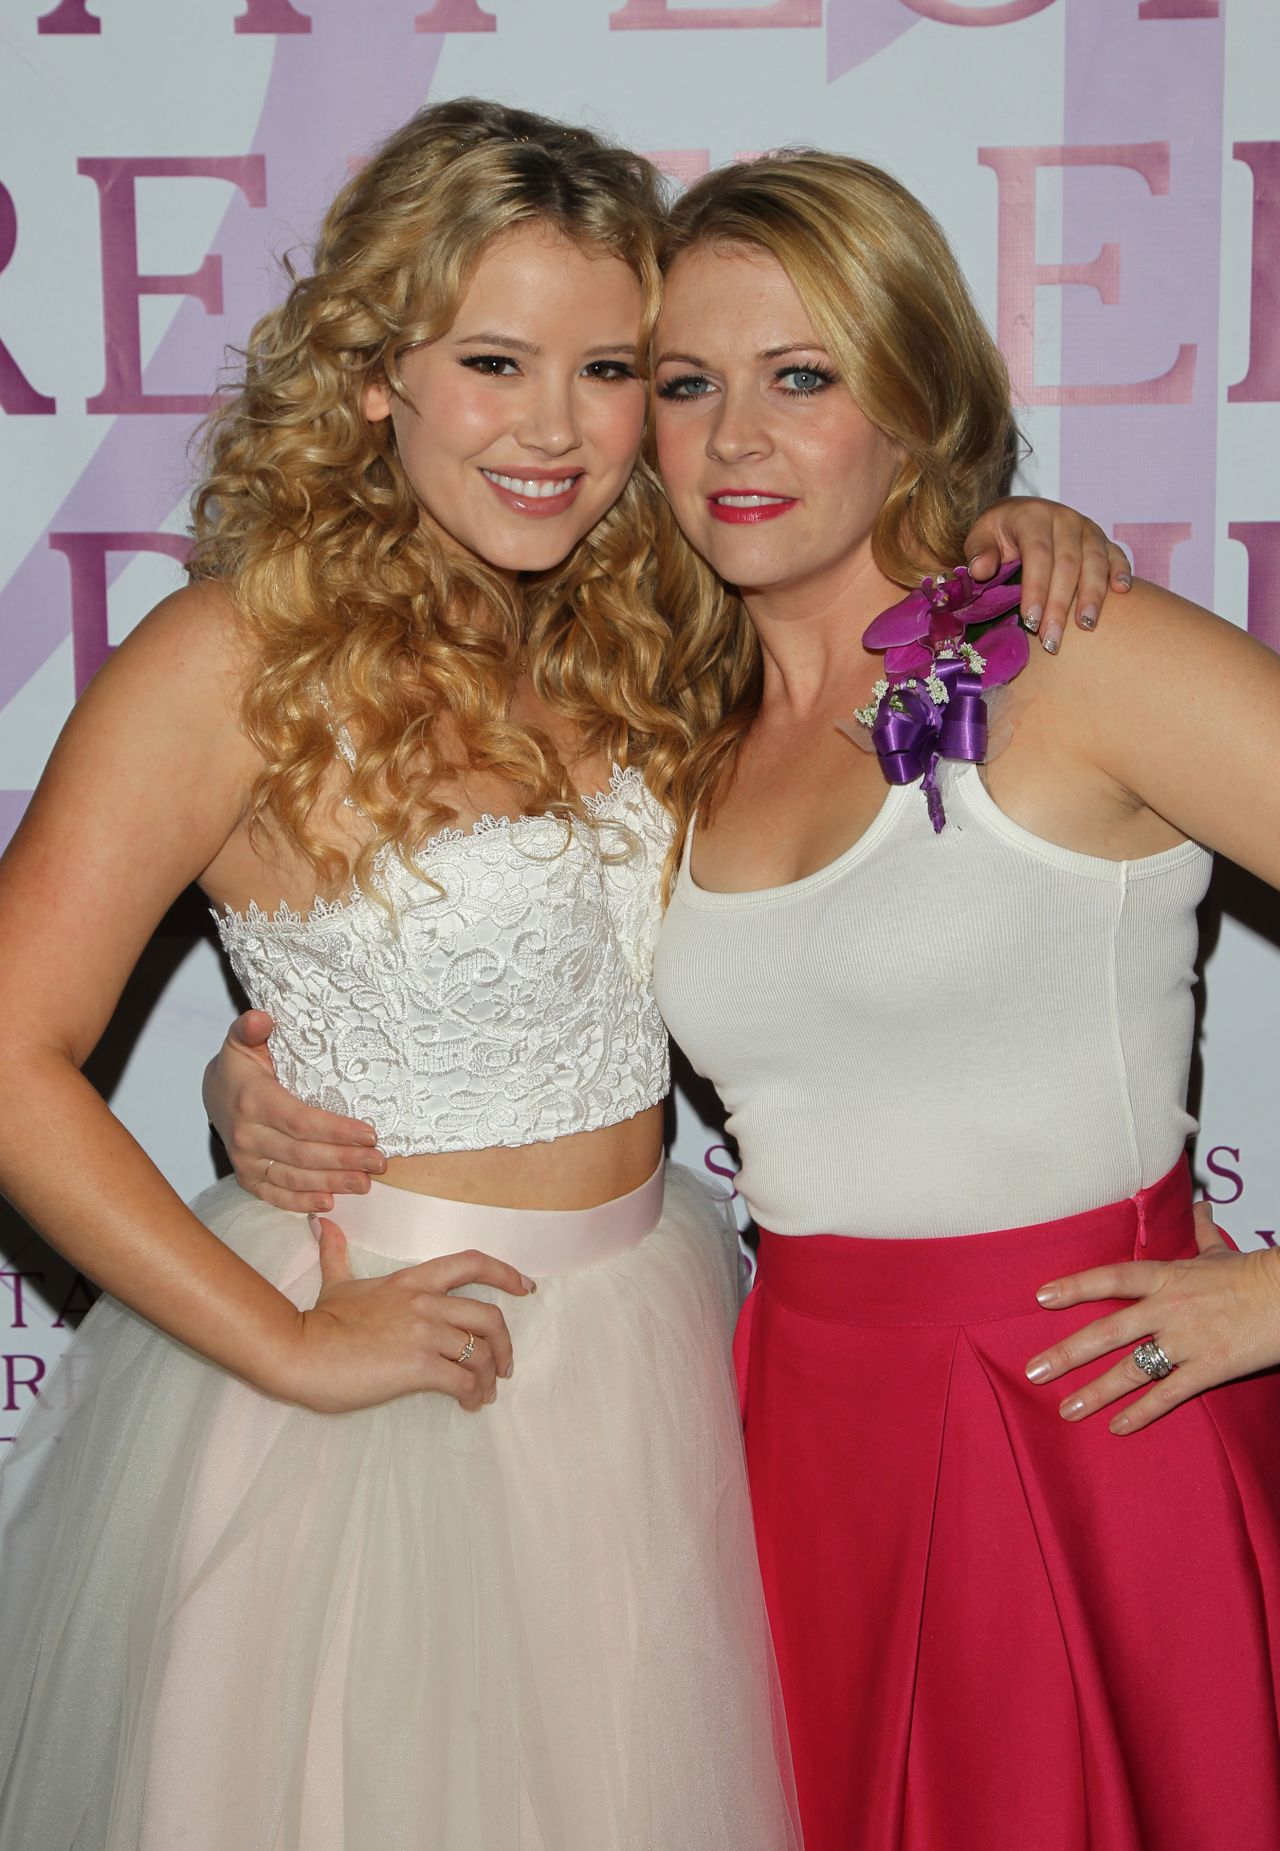 Taylor Spreitler and Melissa Joan Hart